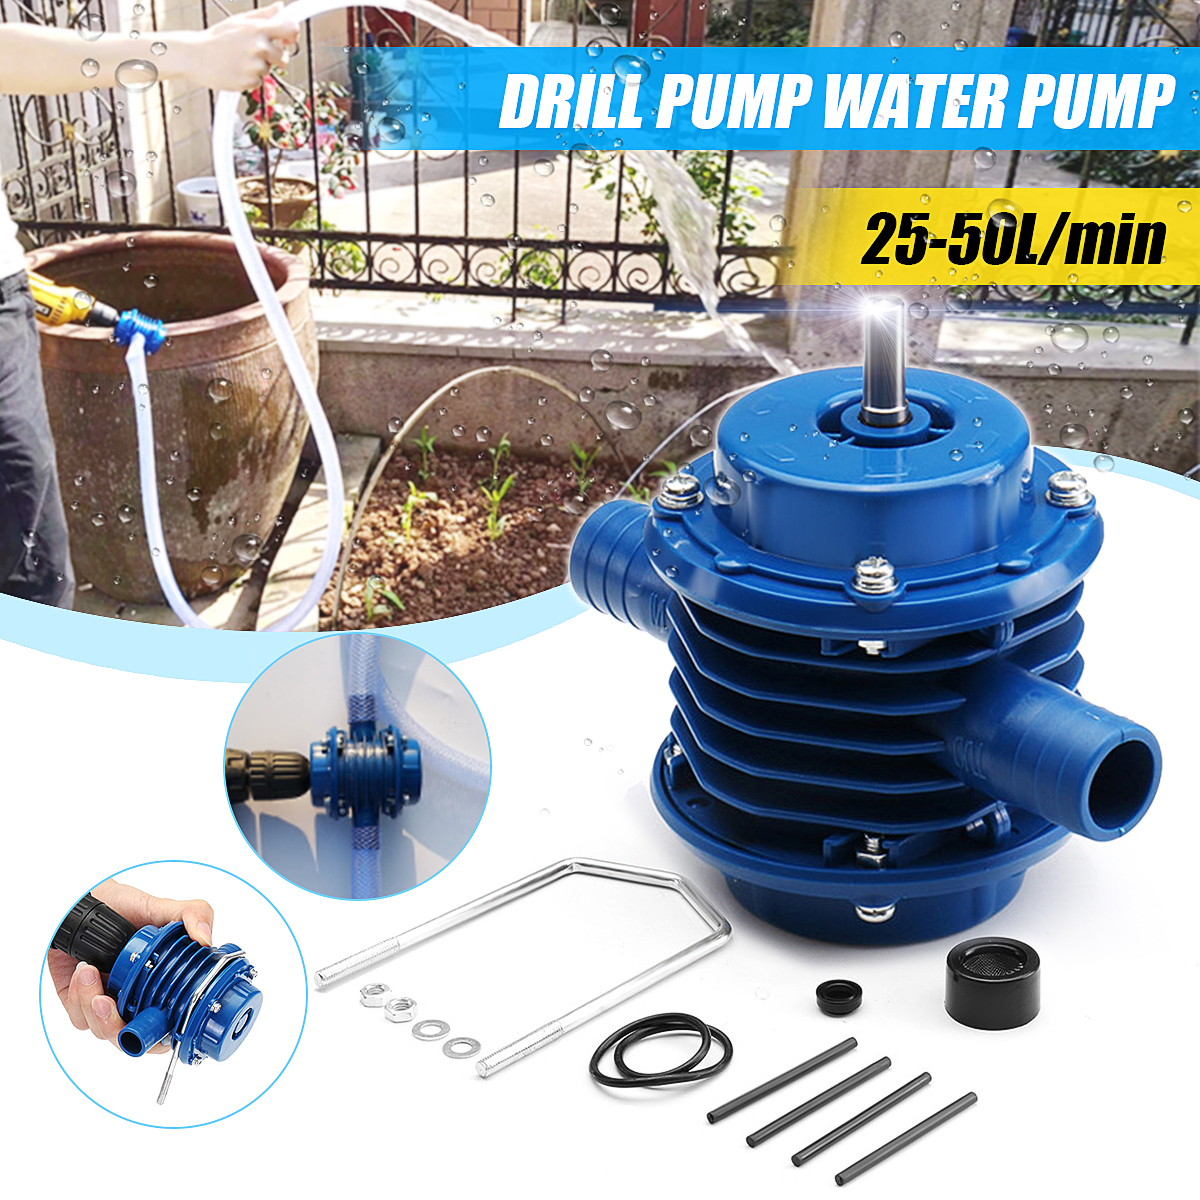 Heavy Duty Self-Priming Hand Electric Drill Water Pump For Electric Drill Mini Self-priming Pump 7mm Round Shank DC Pumping